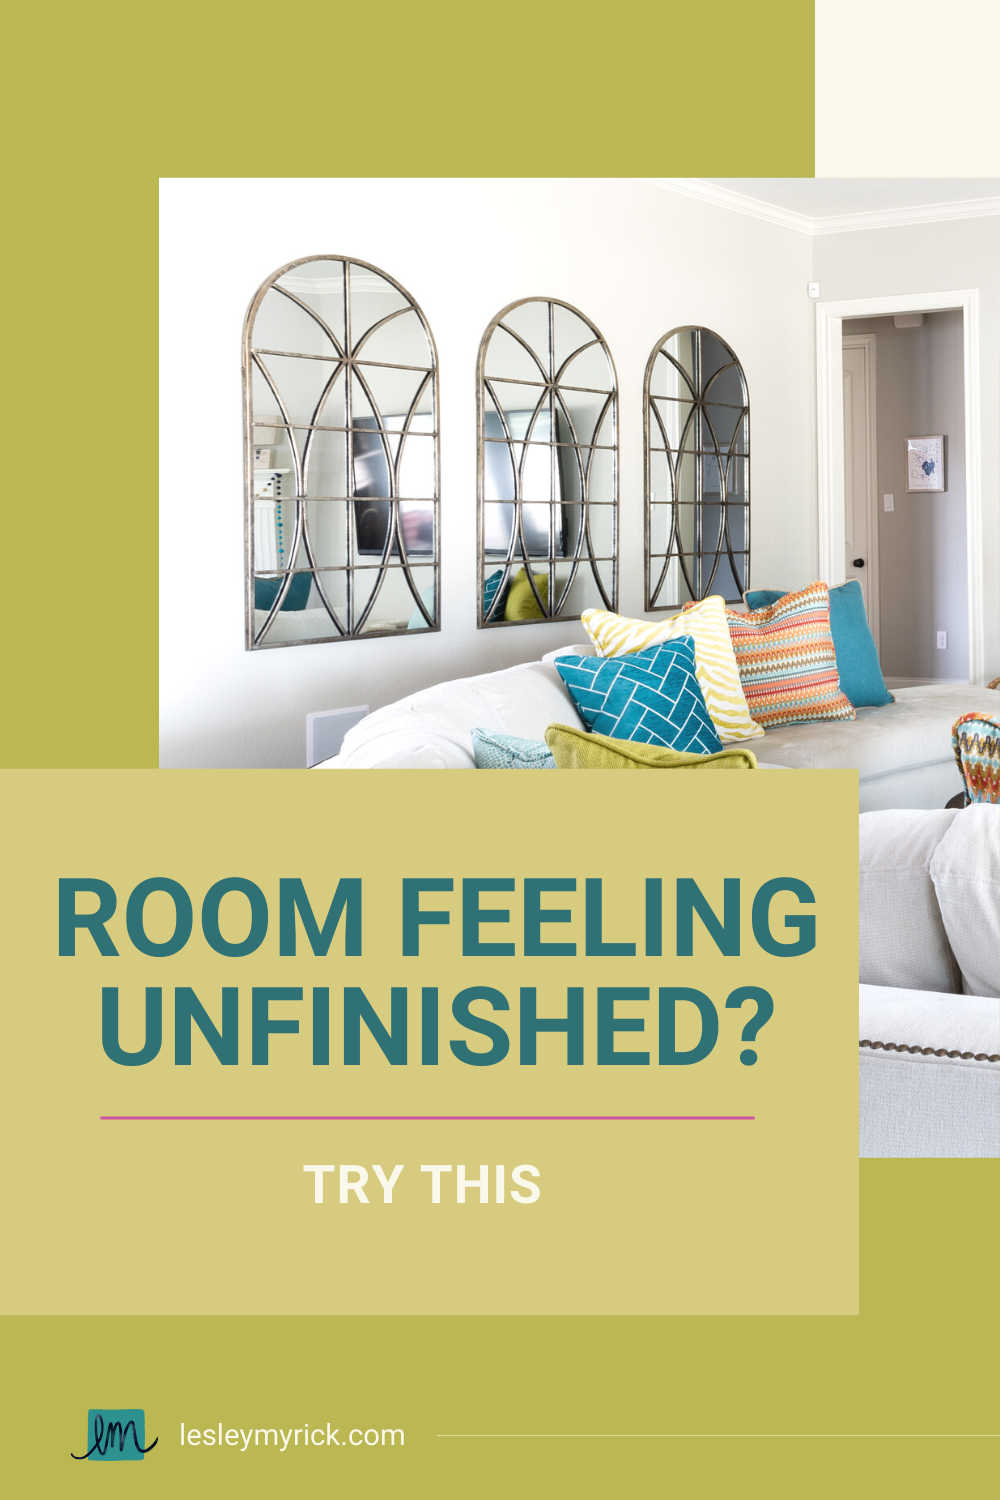 Room feeling unfinished? Try this.